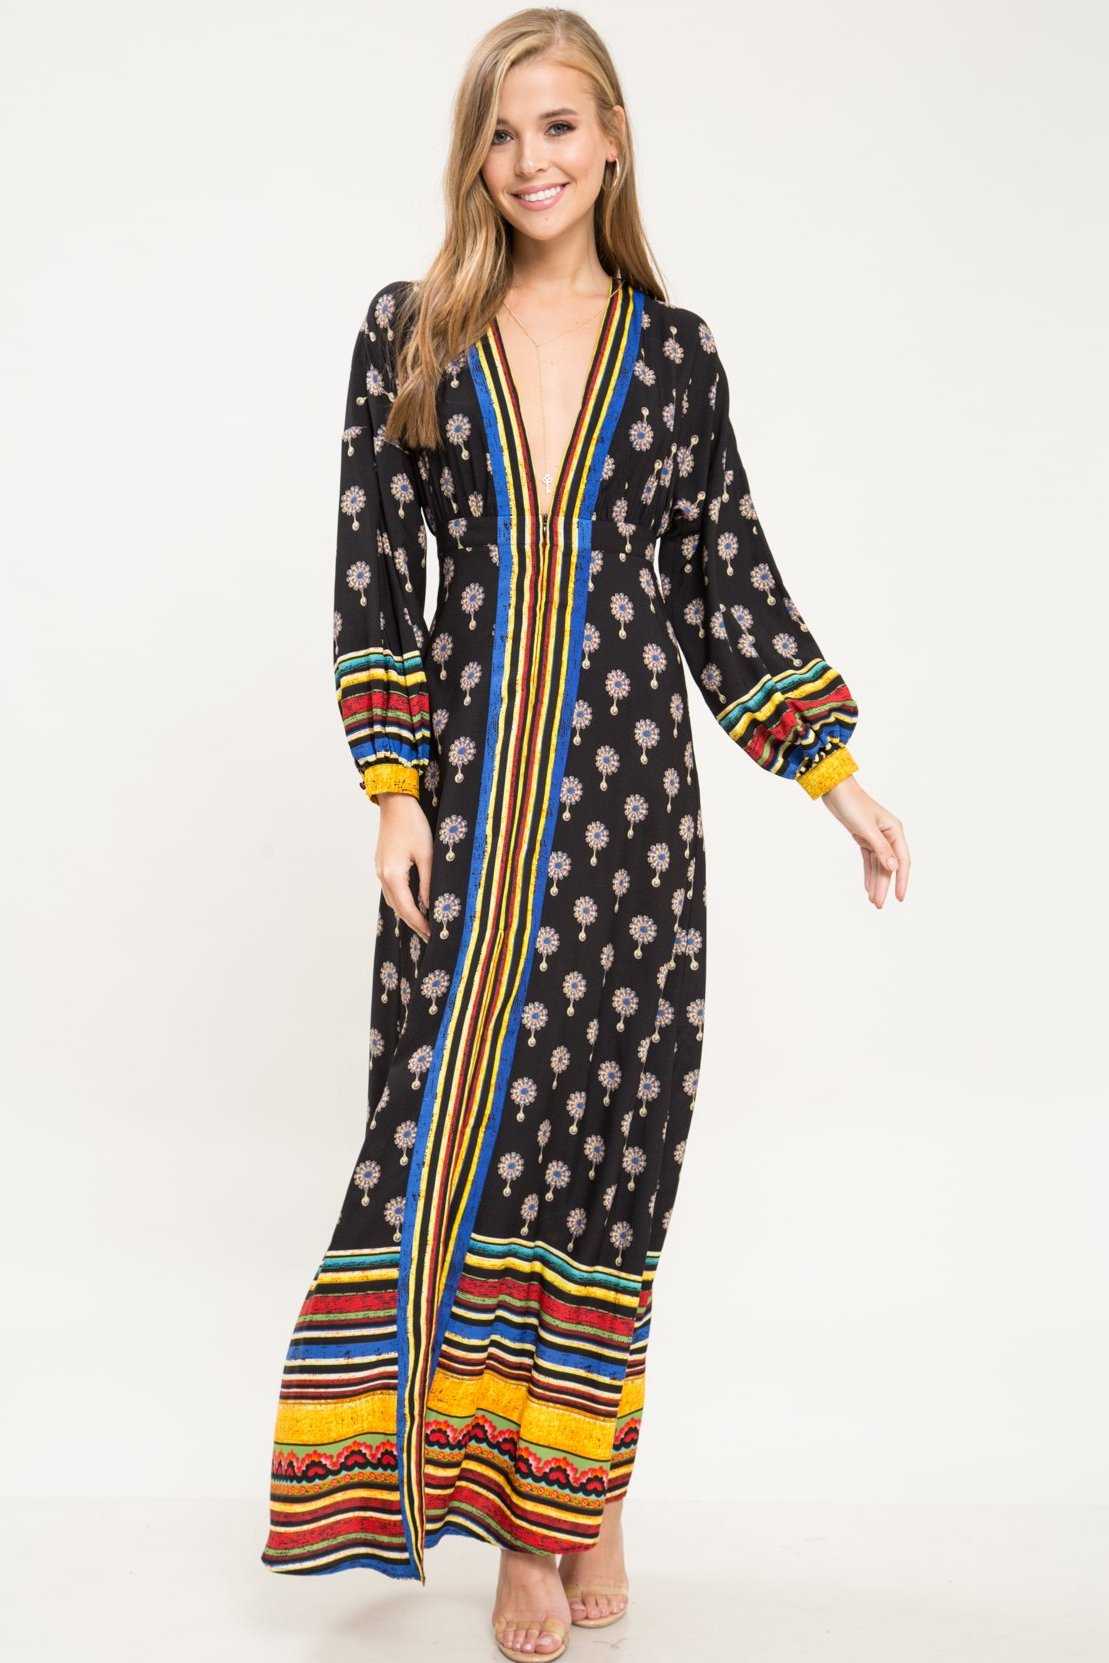 Imagine Boho Zip Up Maxi Dress - Geegeebae